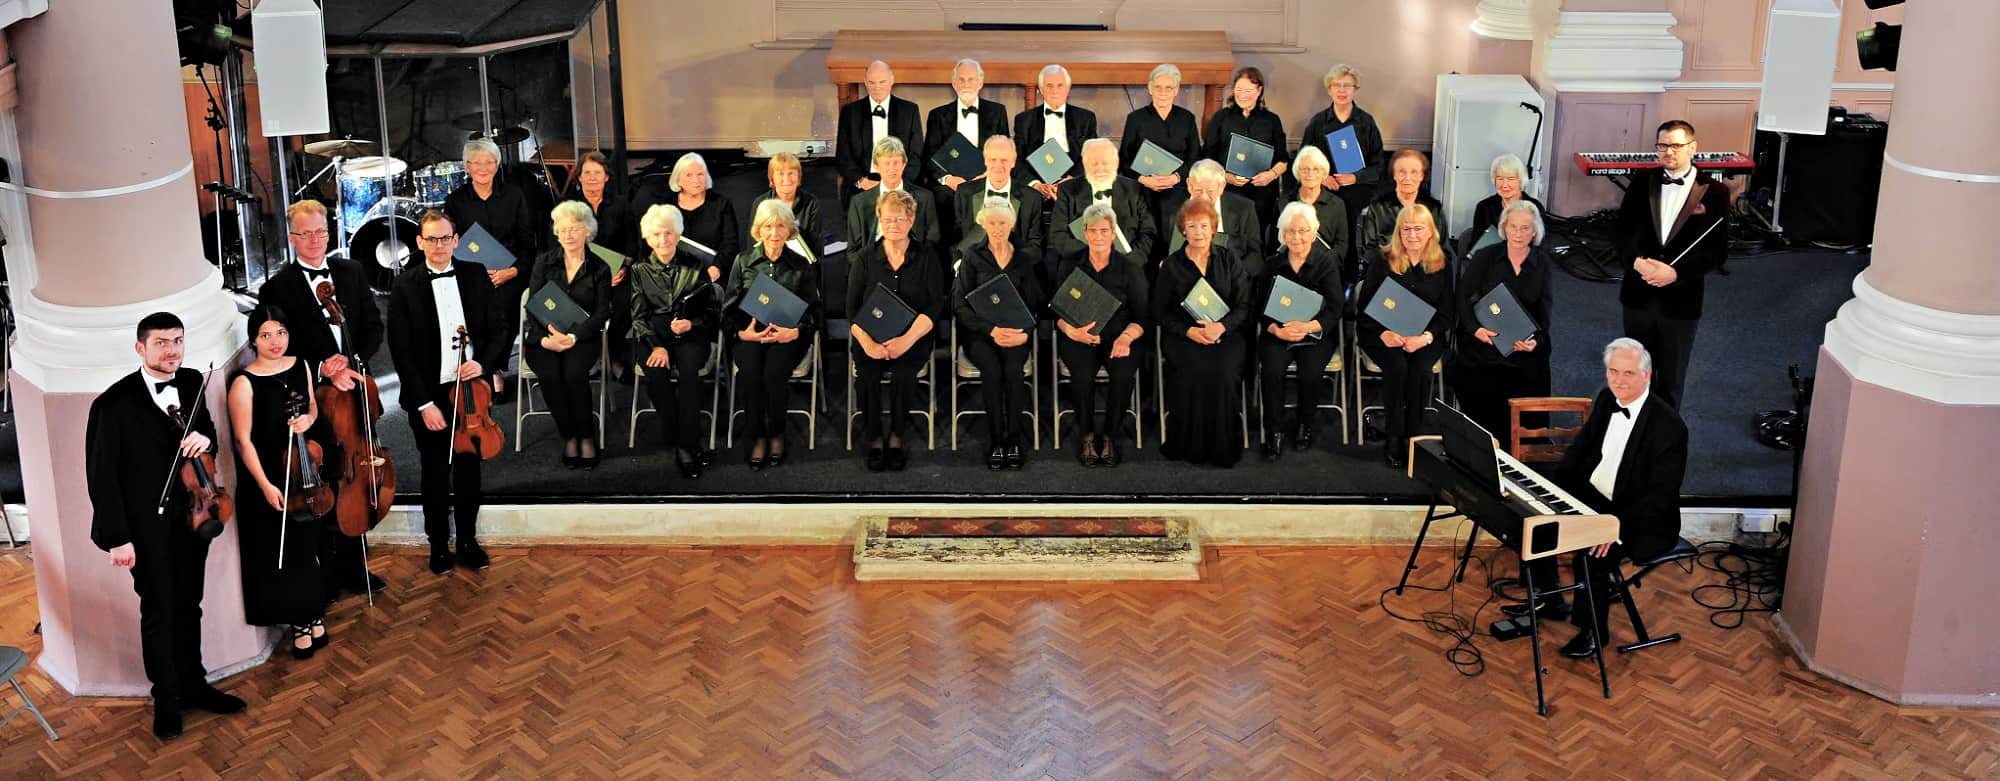 Portsmouth Festival Choir in performance